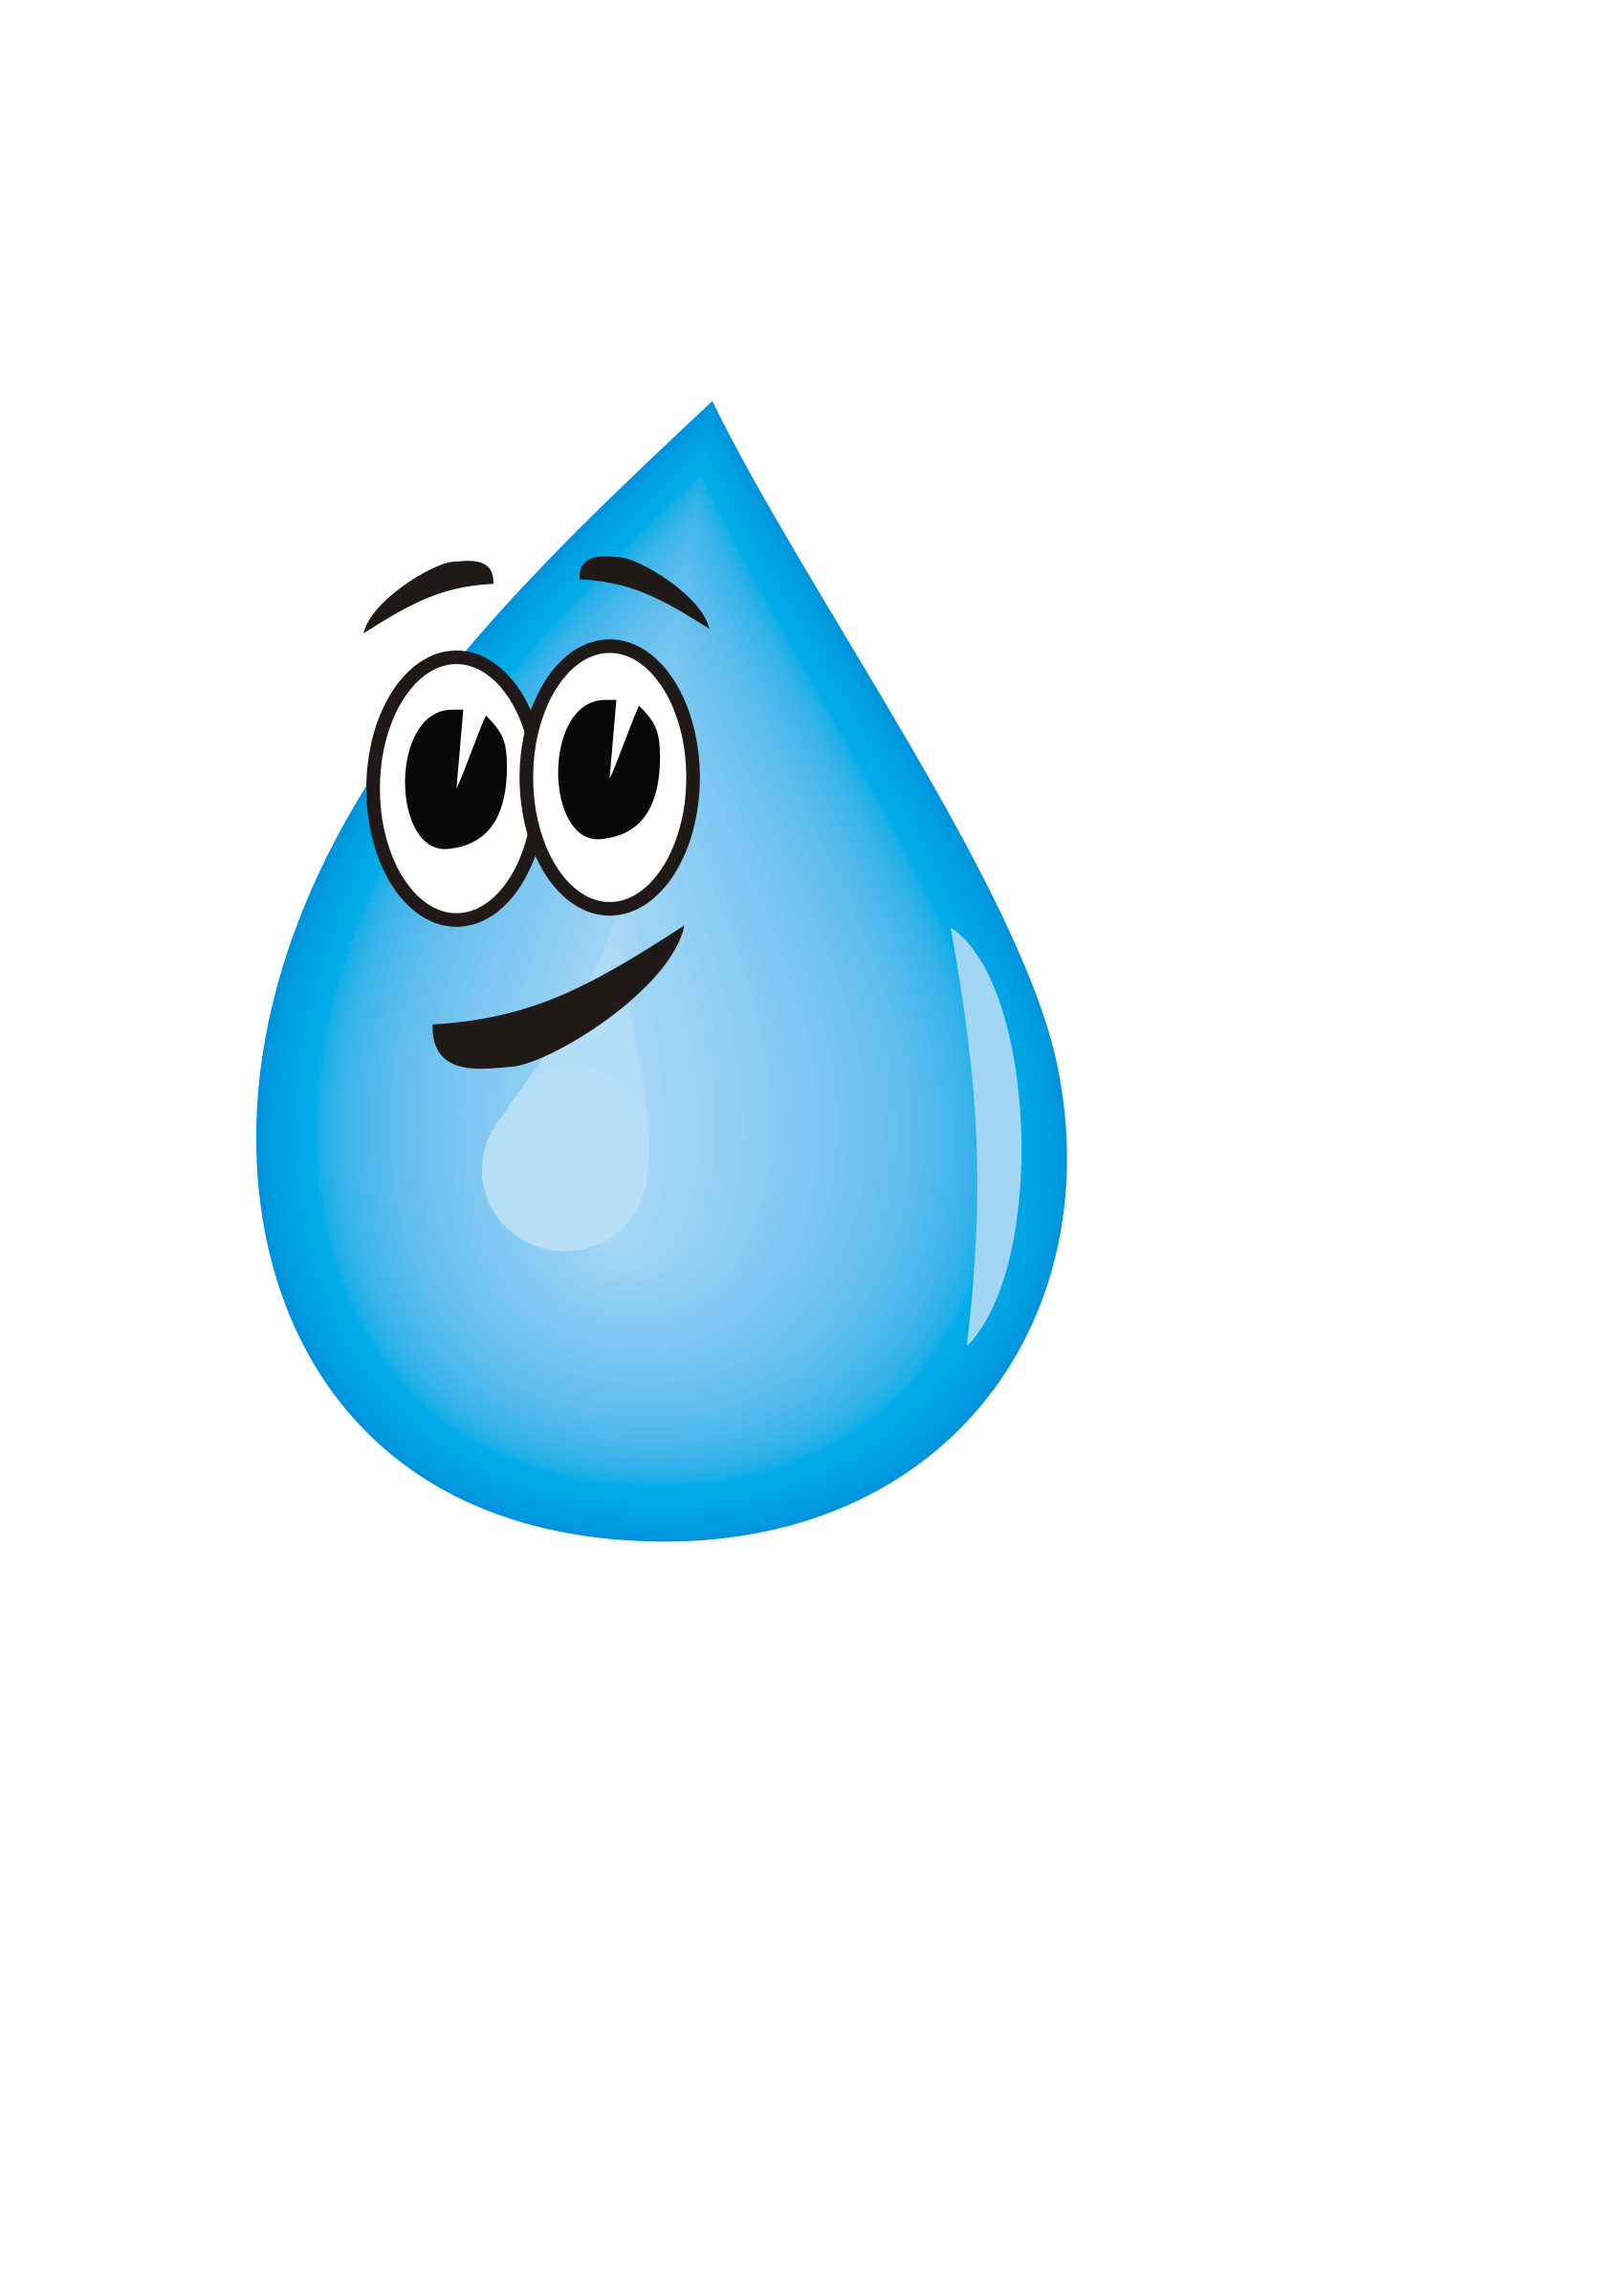 Free Water Cliparts, Download Free Clip Art, Free Clip Art.